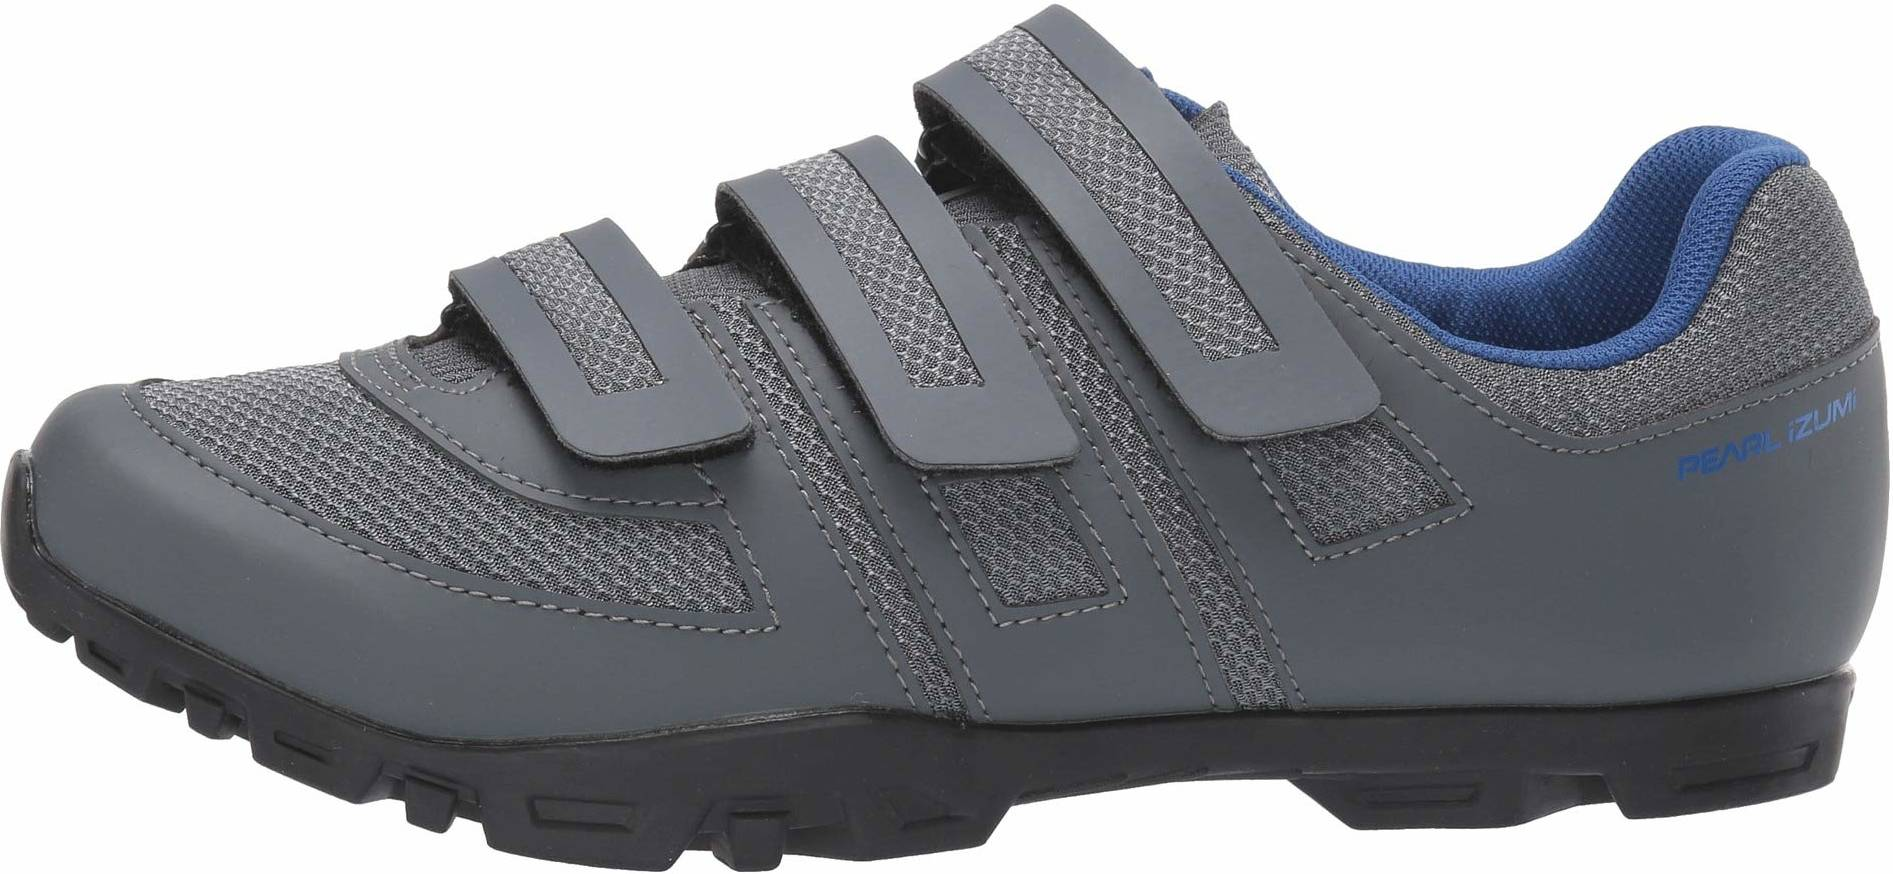 Indoor Cycling Shoes (16 Models in